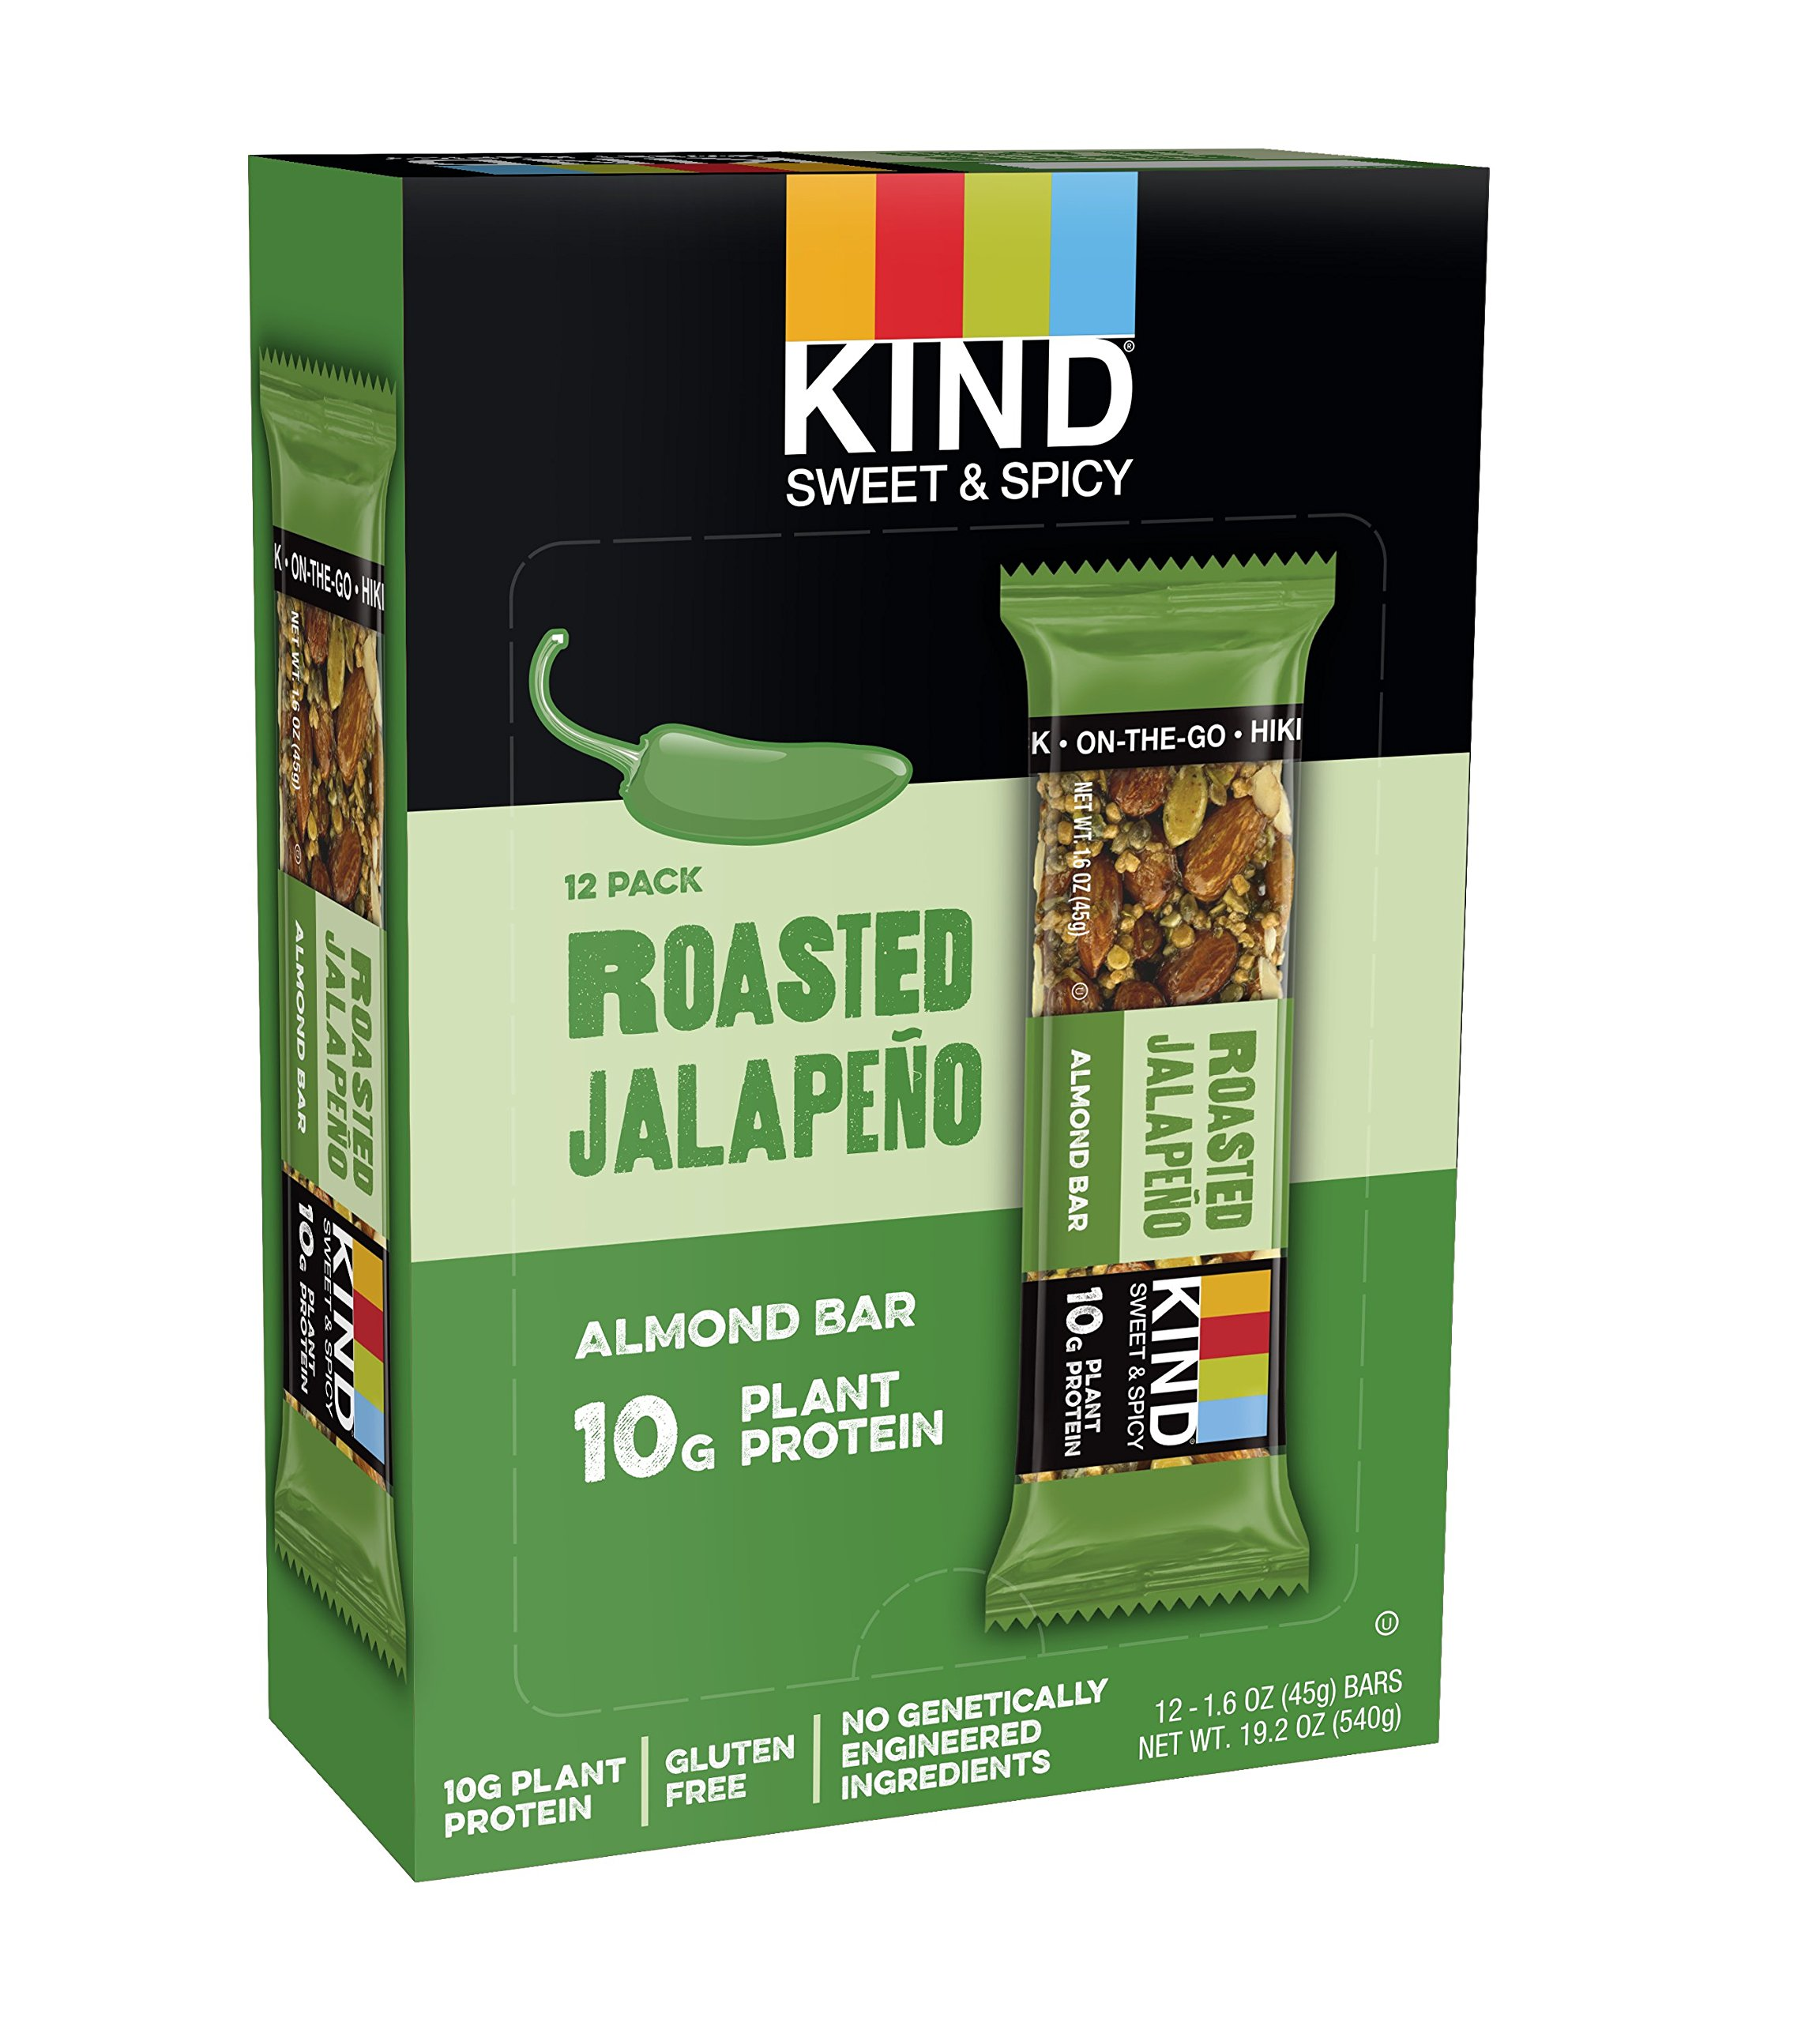 Kind Sweet and Spicy Bars, Roasted Jalapeno, Gluten Free, 10g Plant Protein